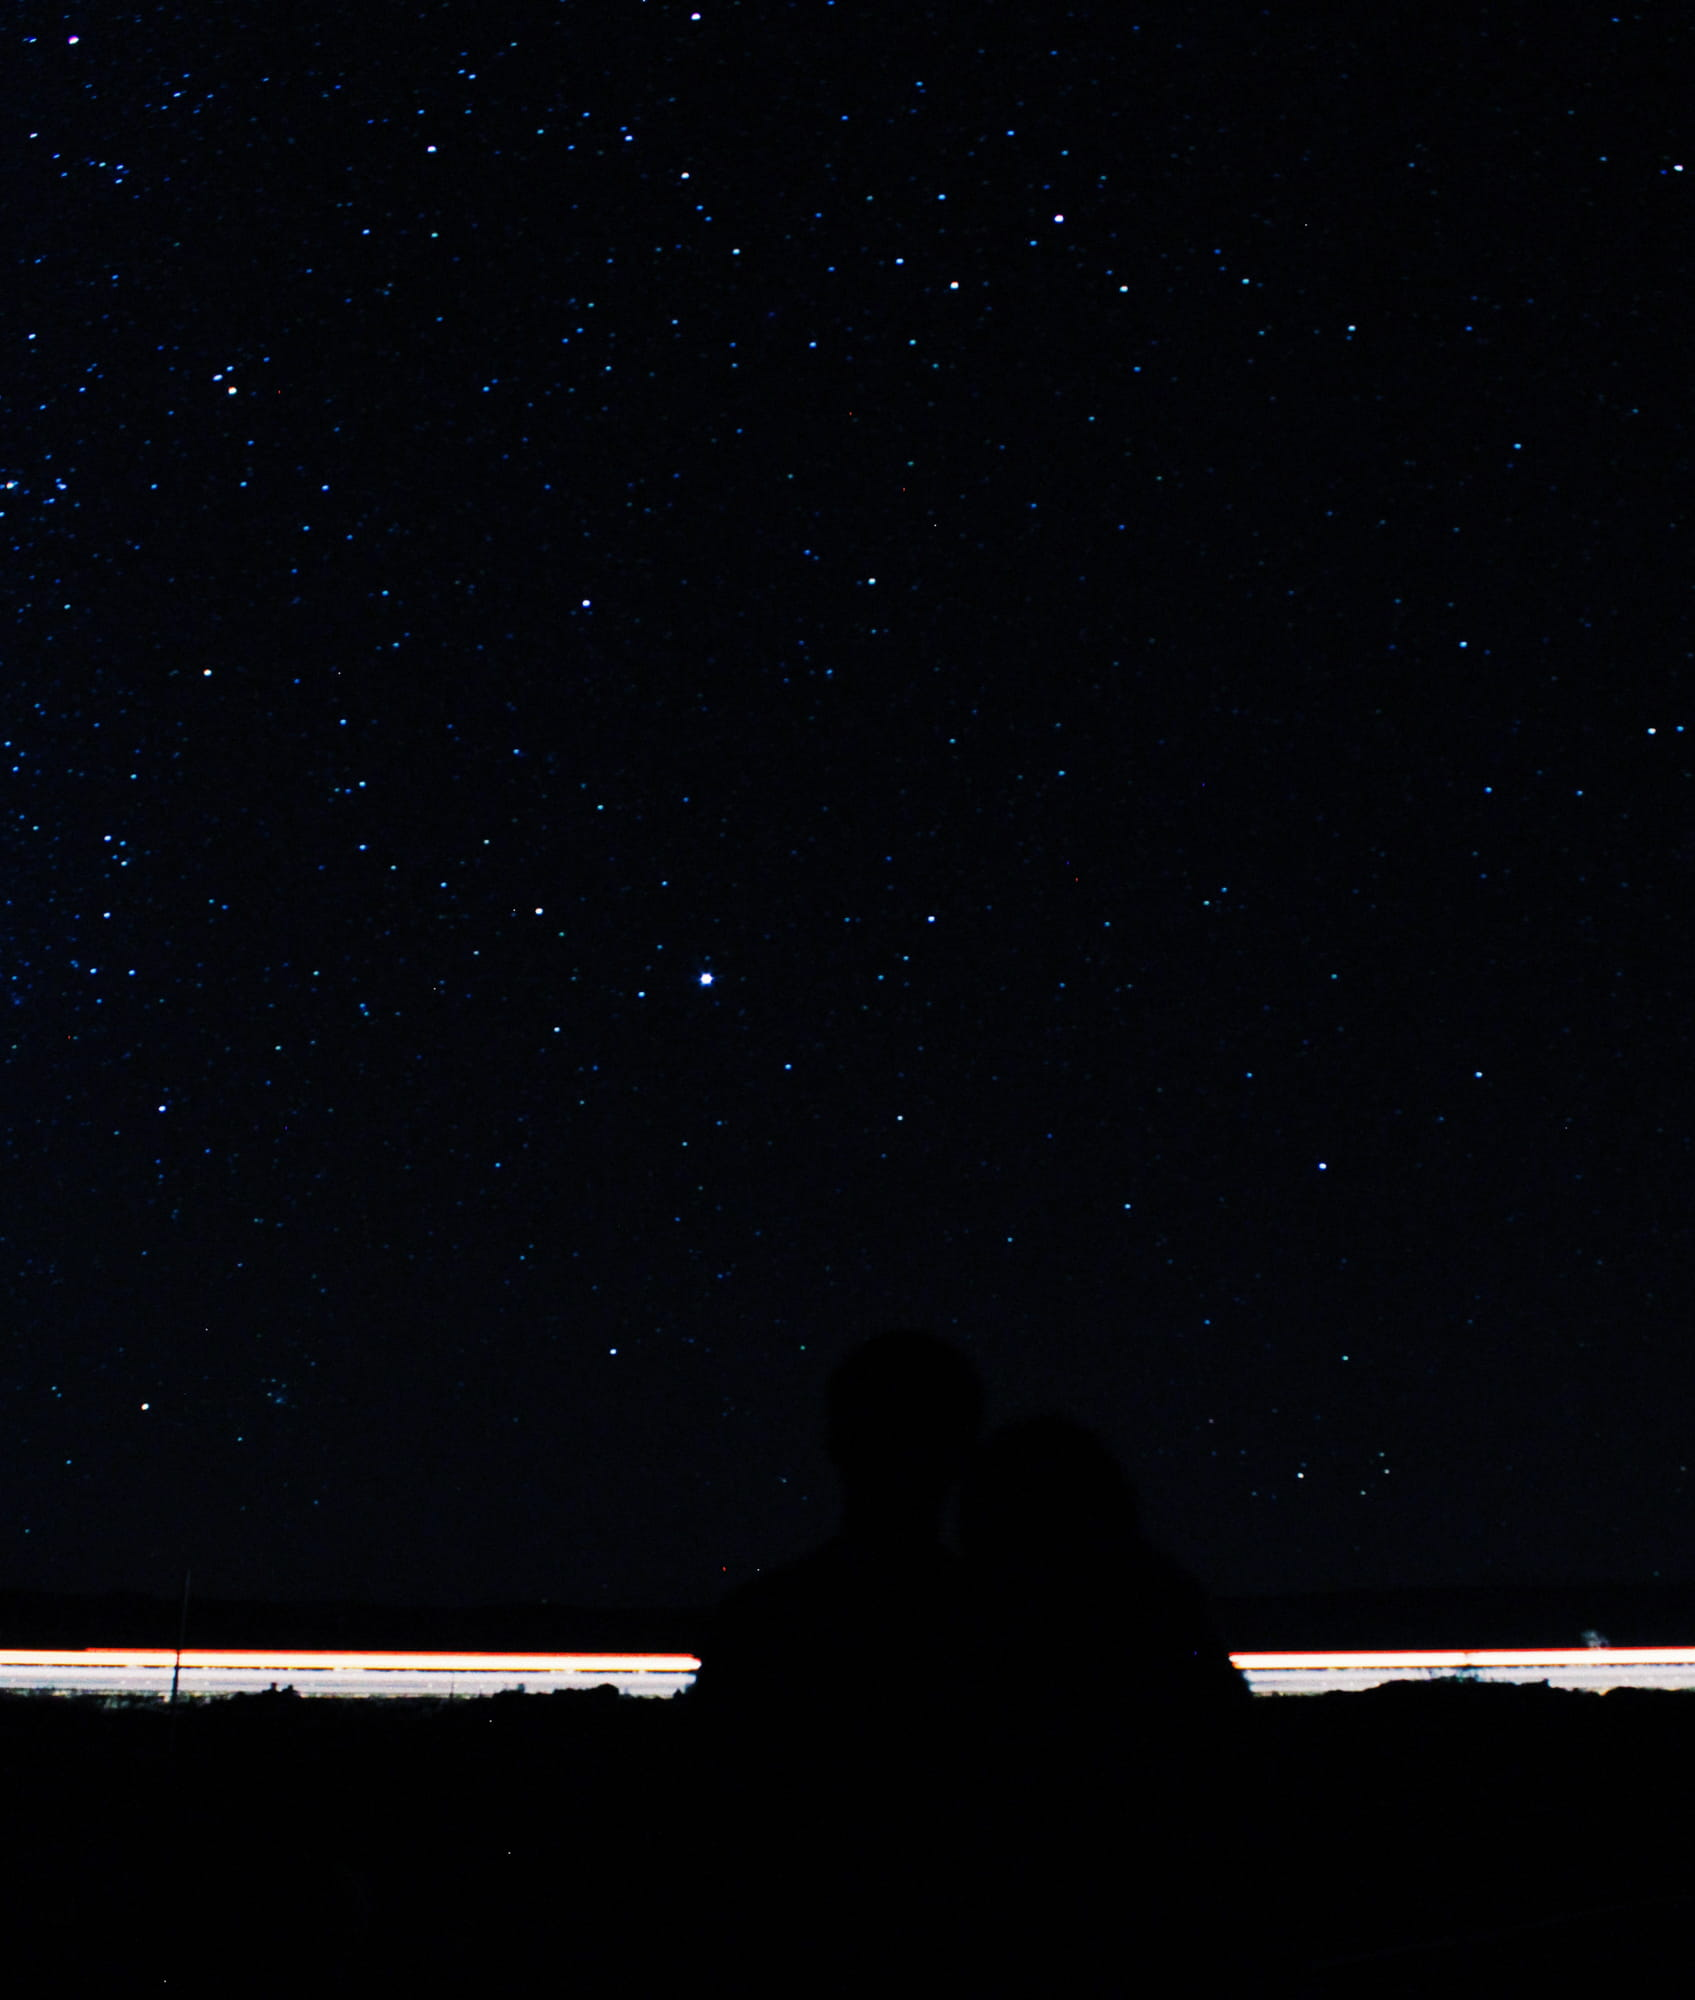 Photo of the night sky with a sliver of light on a low horizon, work by Kristen Aoyagi